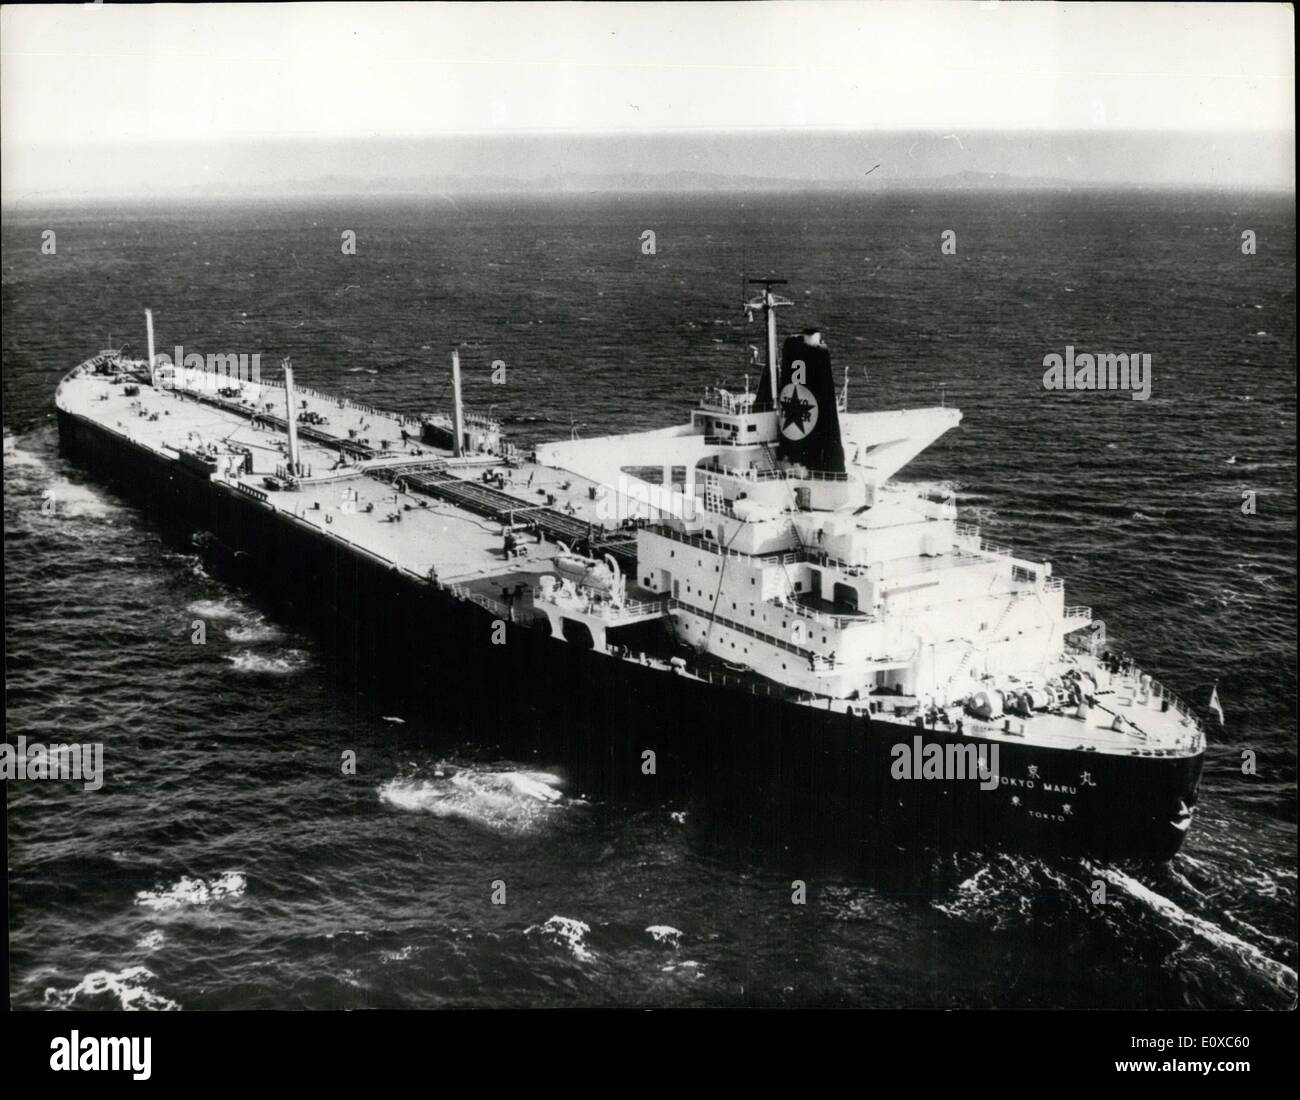 Feb. 02, 1966 - WORLD'S LARGEST SHIP SAILS: The 150,000-ton ''Tokyo Maru'', the world's largest tanker, is shown leaving Yokohama, Japan, on her maiden voyage to Saudi Arabia to load with crude oil. The huge ship, 306.5 metres long, 47.5 metres wife, and 24 metres deep, has a top speed of 16.75 knots with a full cargo of petroleum. The ship was launched on November 27th, 1965, and completed on February 1, 1966. The owners are the Tokyo Tanker Co. and it was built by the Ishikawajima-Harima Heavy Industries at their Yokohama shipyard. - Stock Image